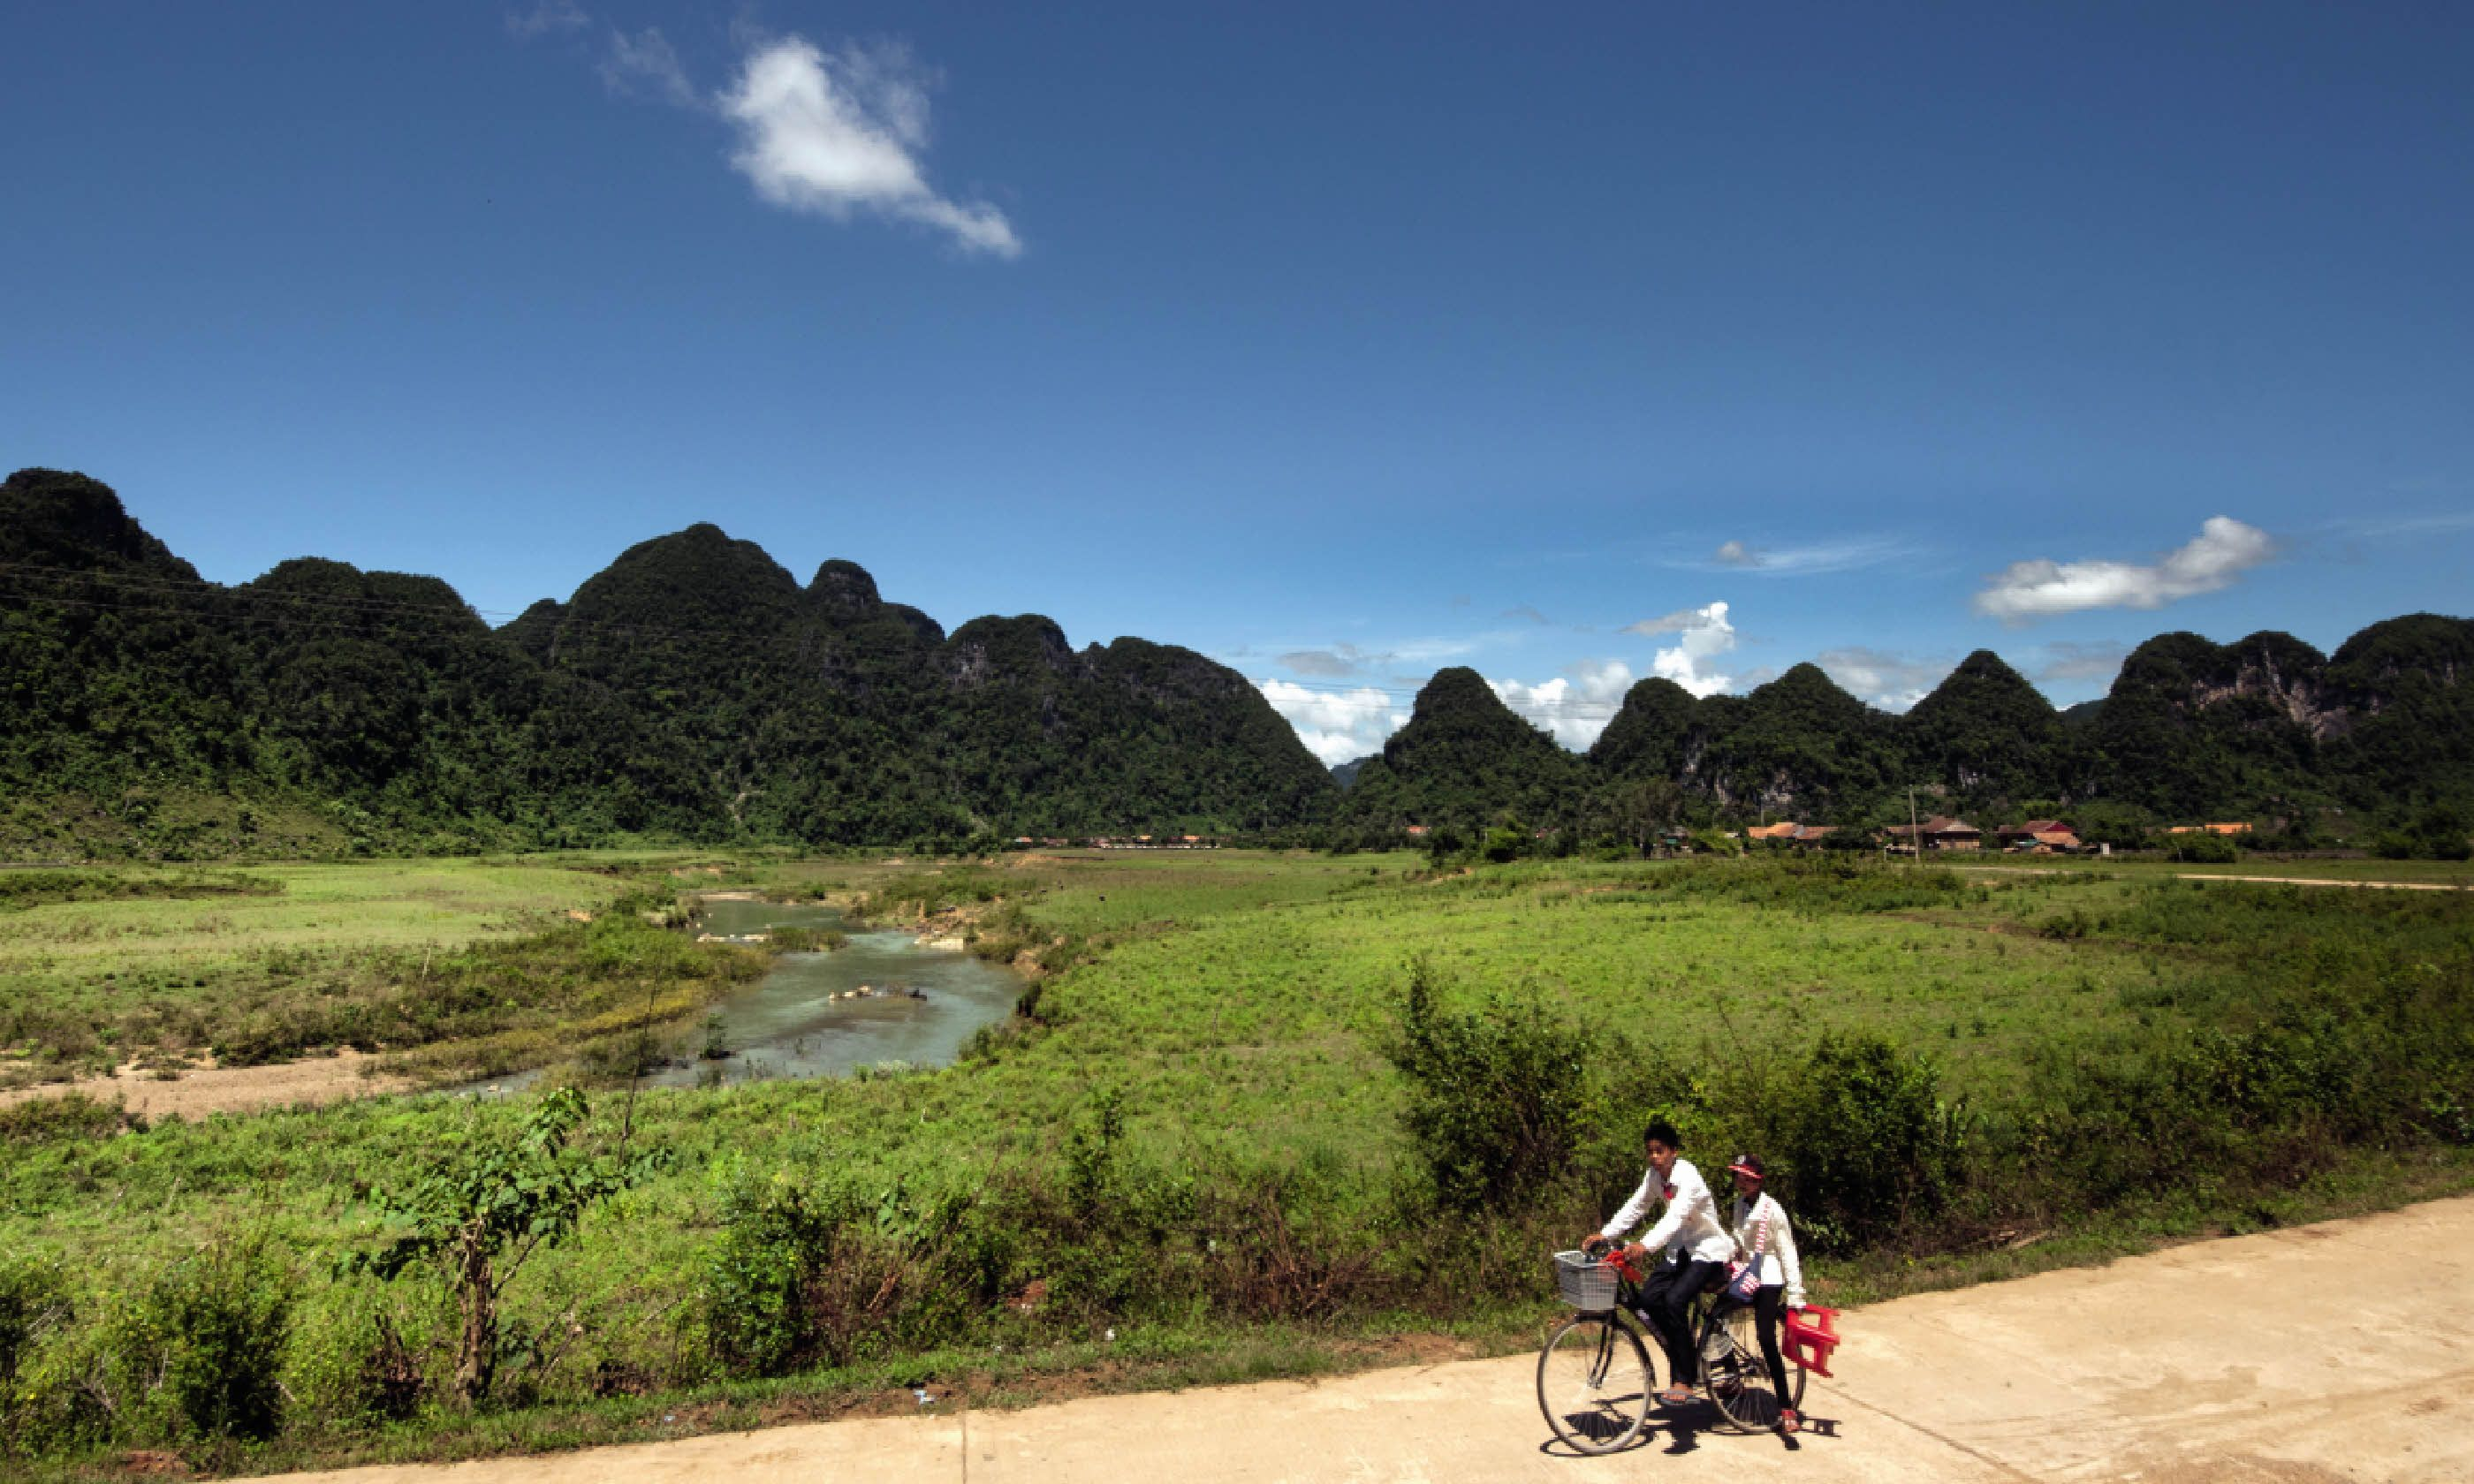 Quang Binh province – who would realise that spider-crammed caves lie beneath? (Photo: David W Lloyd)